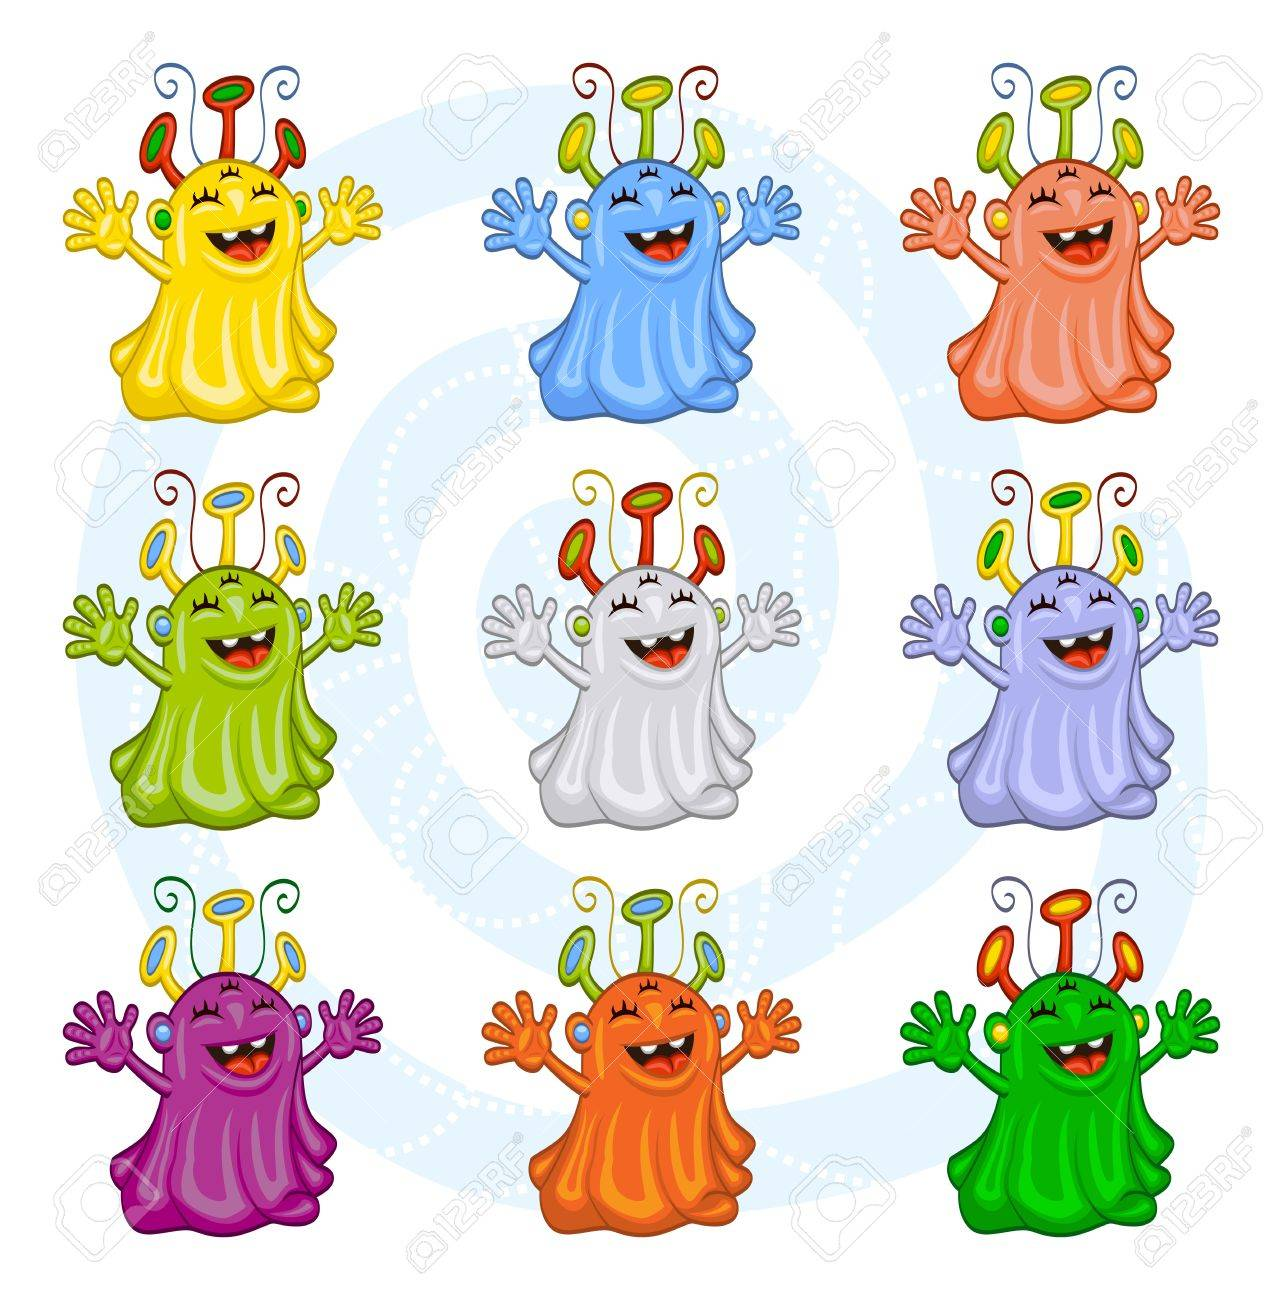 Monsters, aliens for Halloween or other events Stock Vector - 12831930